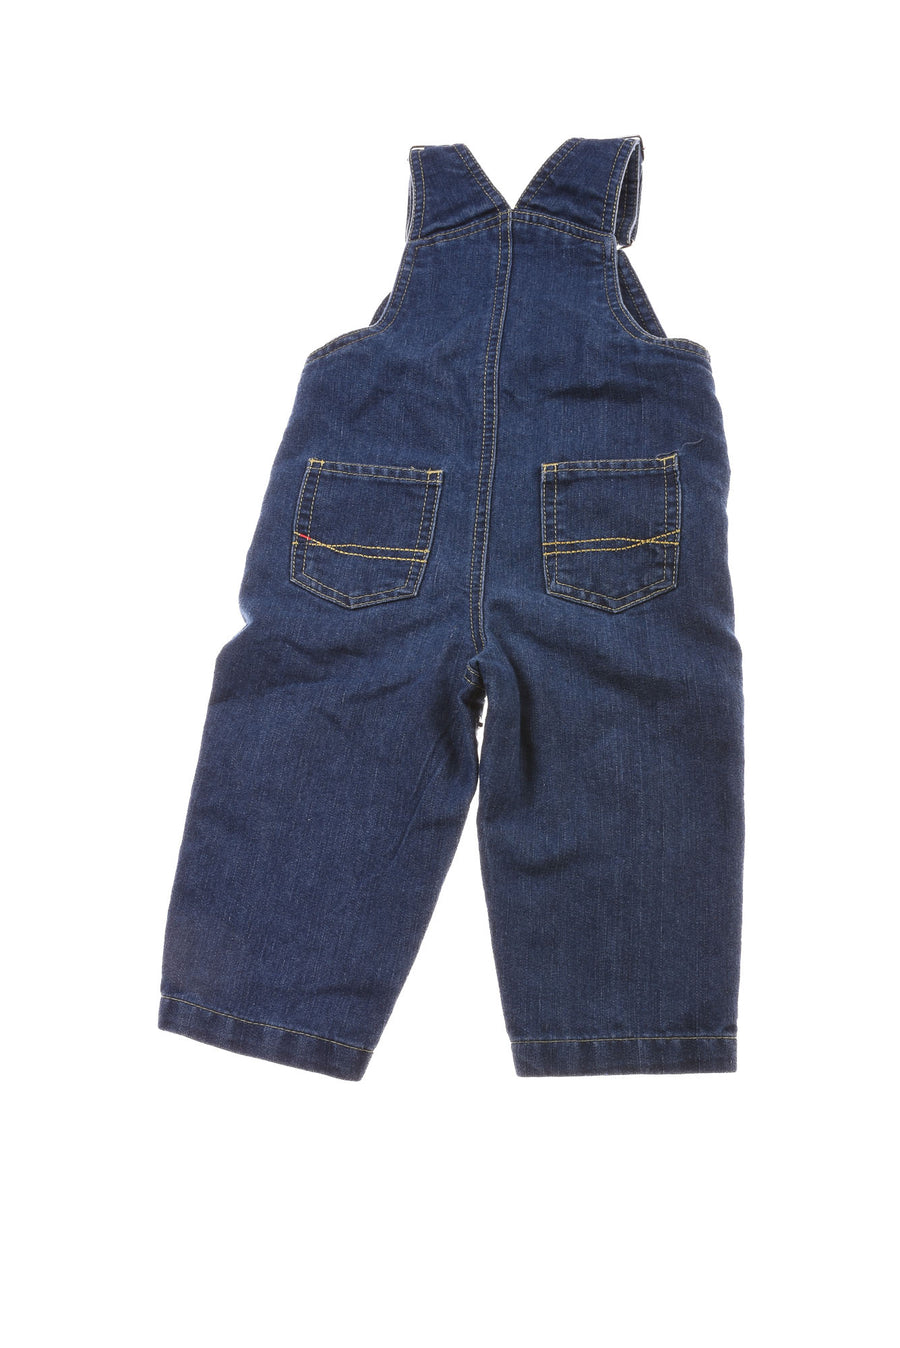 USED Tommy Hilfiger Baby Boy's Overalls 18 Months Blue